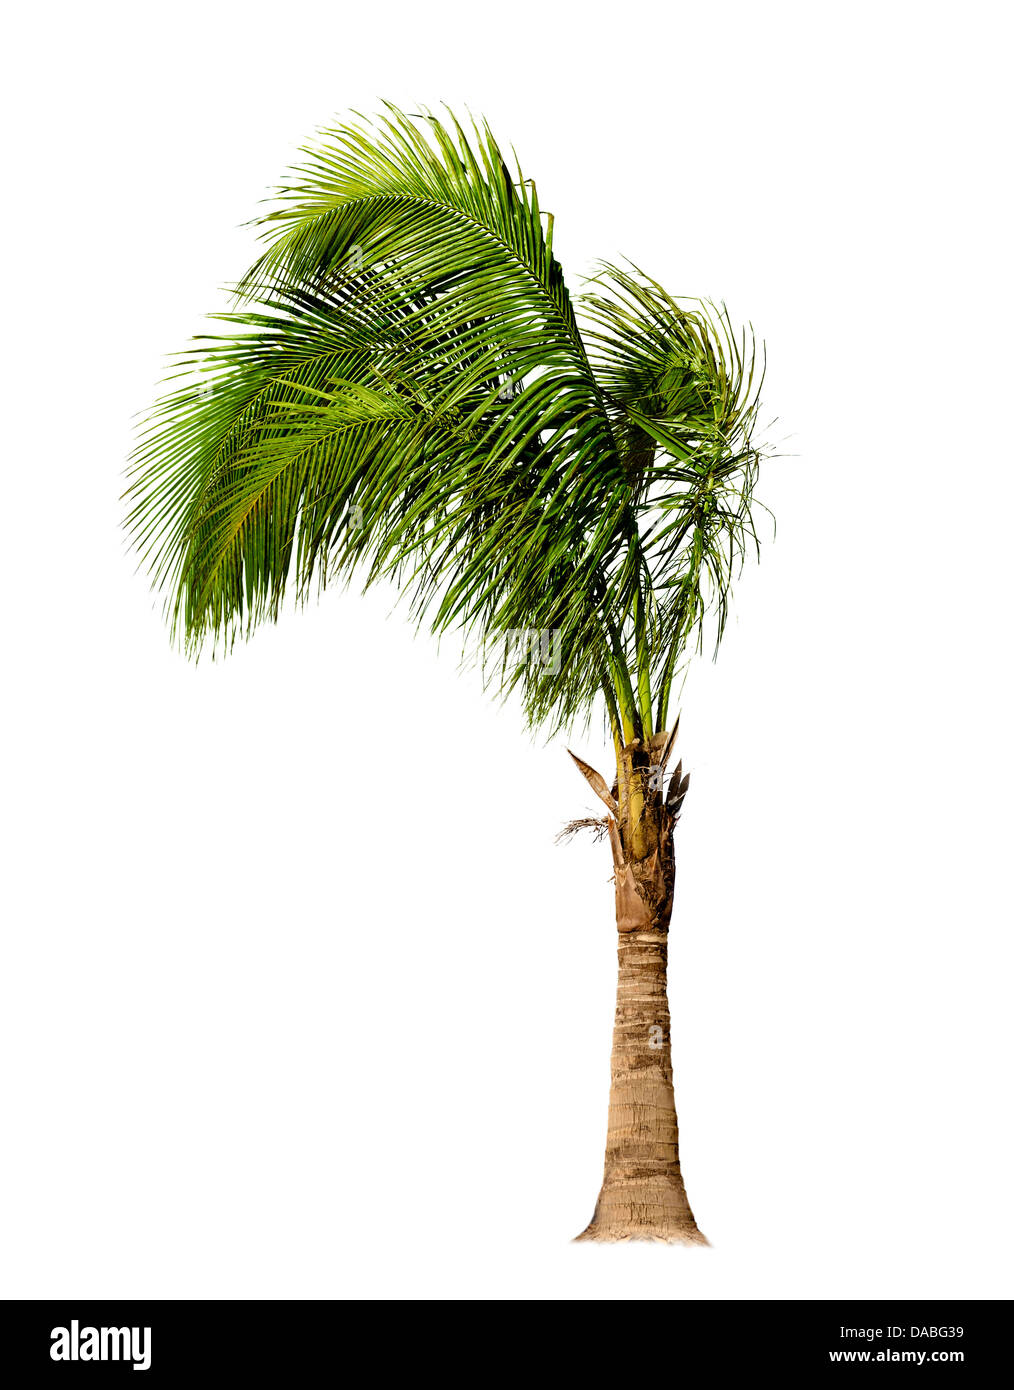 Palm Tree Isolated On White Background - Stock Image